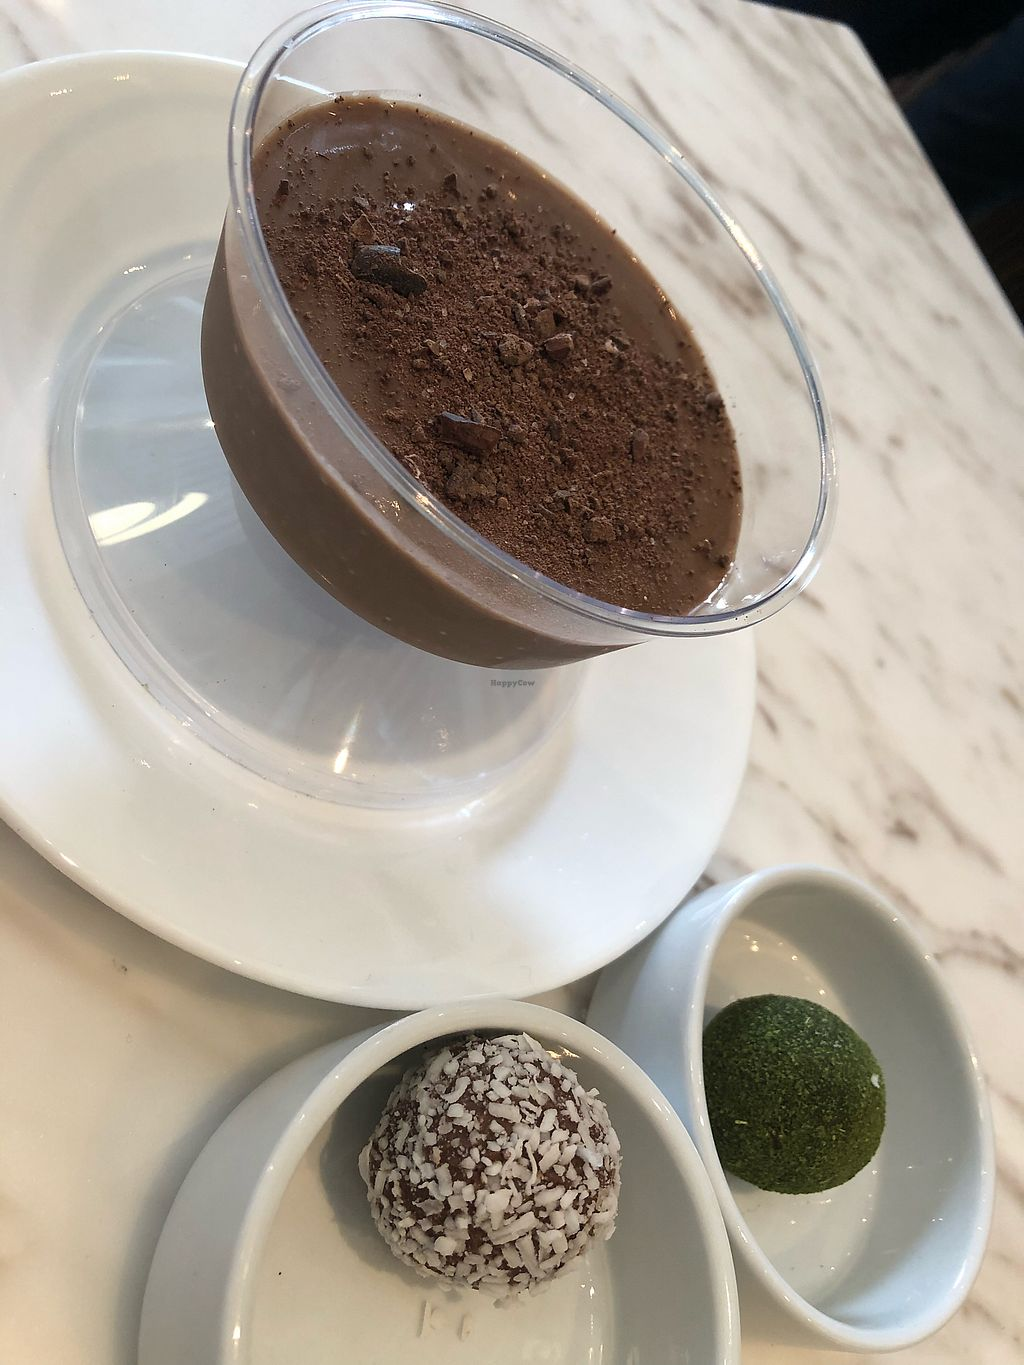 """Photo of Makeout Colombia  by <a href=""""/members/profile/dee_dee"""">dee_dee</a> <br/>Chocolate mousse and truffles  <br/> January 29, 2018  - <a href='/contact/abuse/image/108265/352183'>Report</a>"""